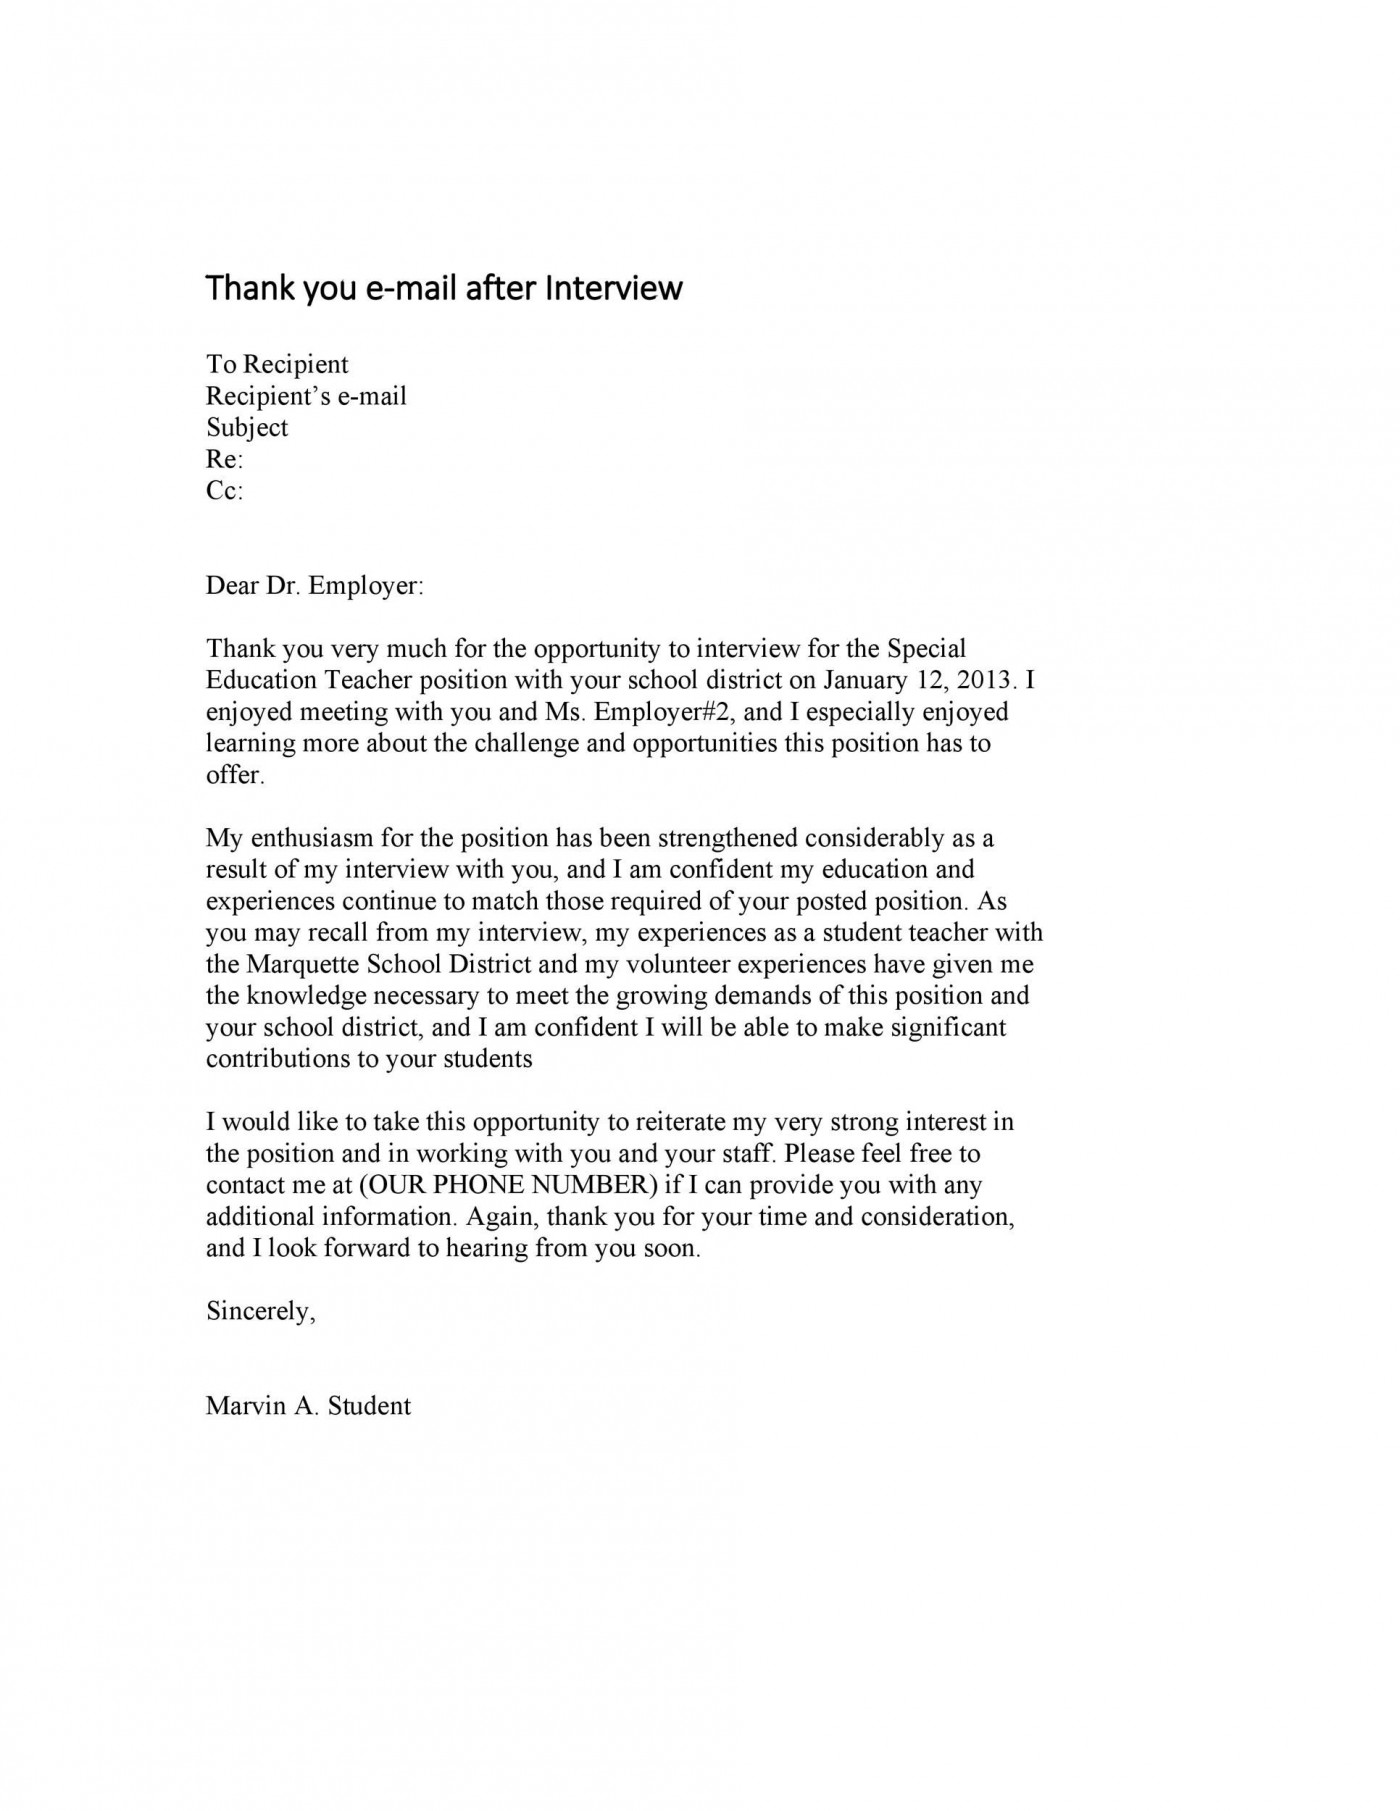 007 Excellent Thank You Note Template For Interview Design  Card Example After Letter Job1400